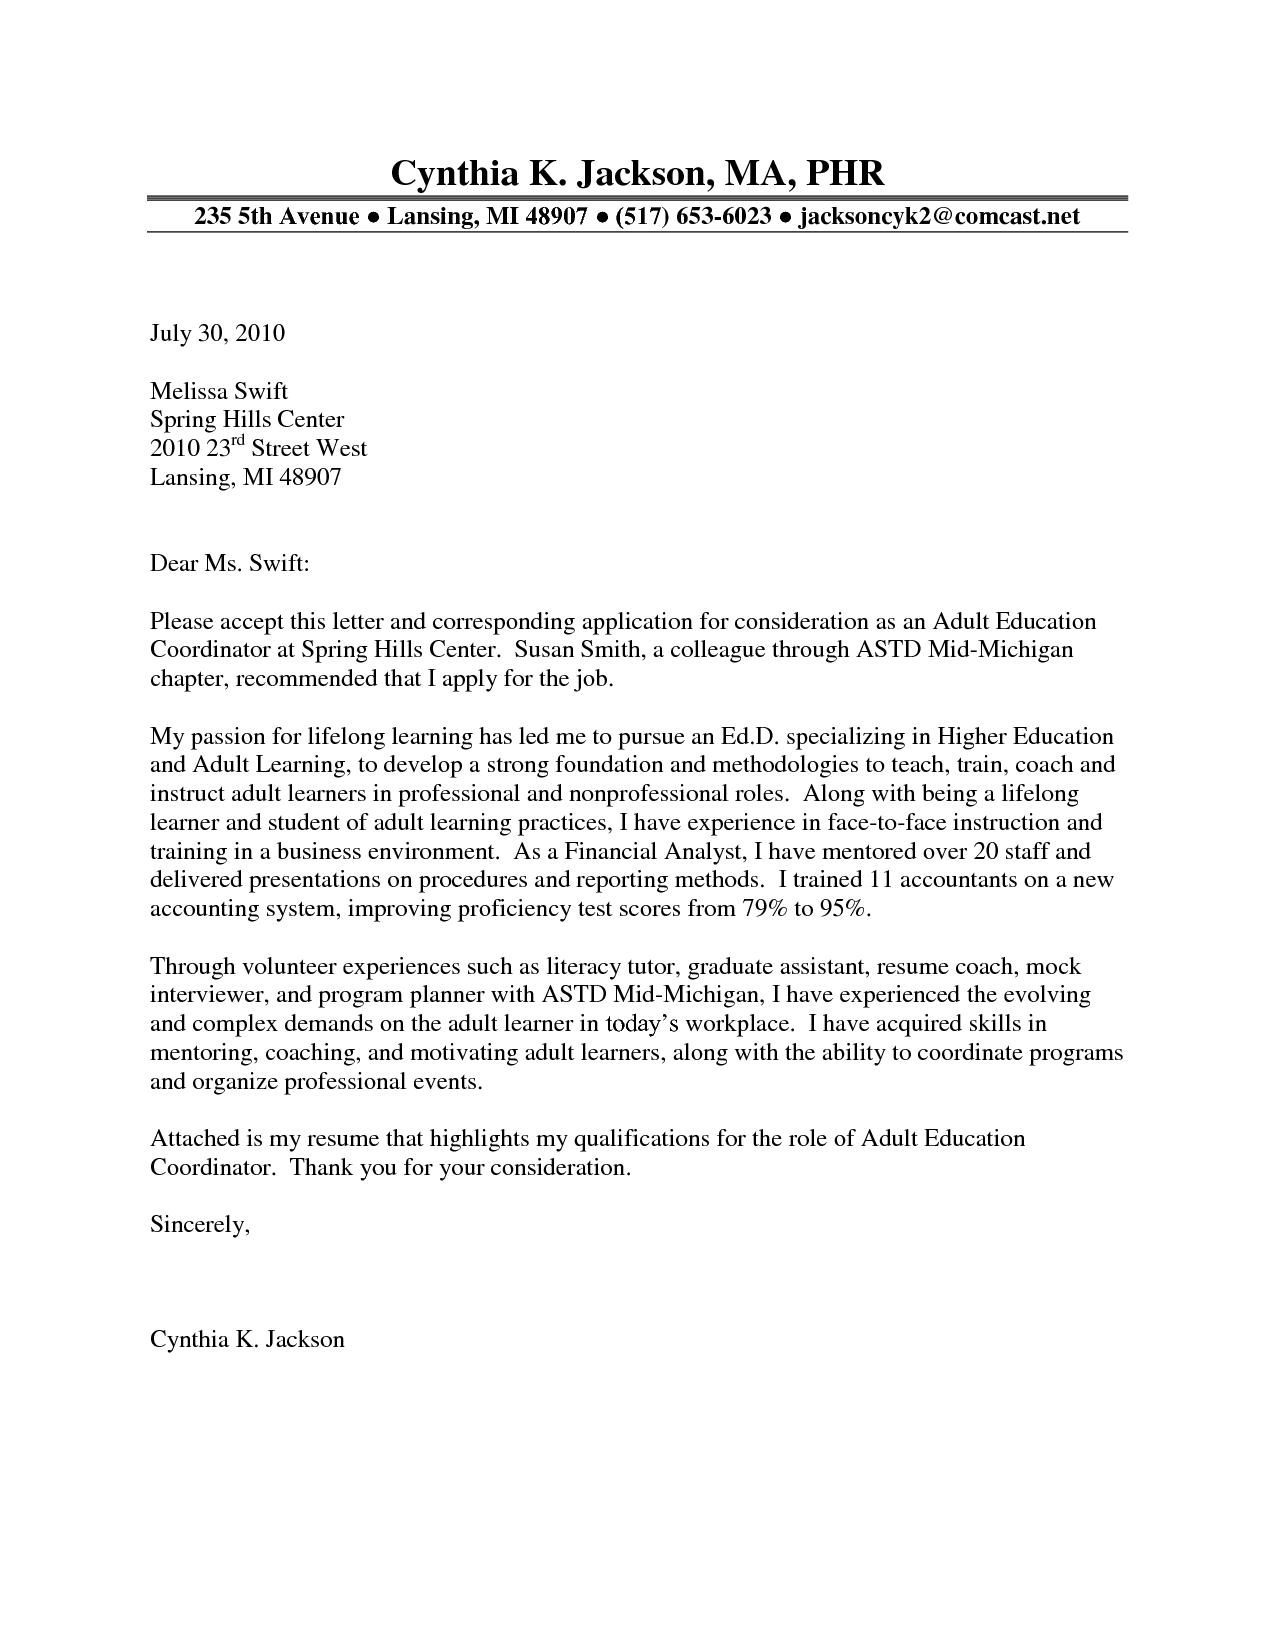 sample cover letter higher education administration executive assistant cover letter sample